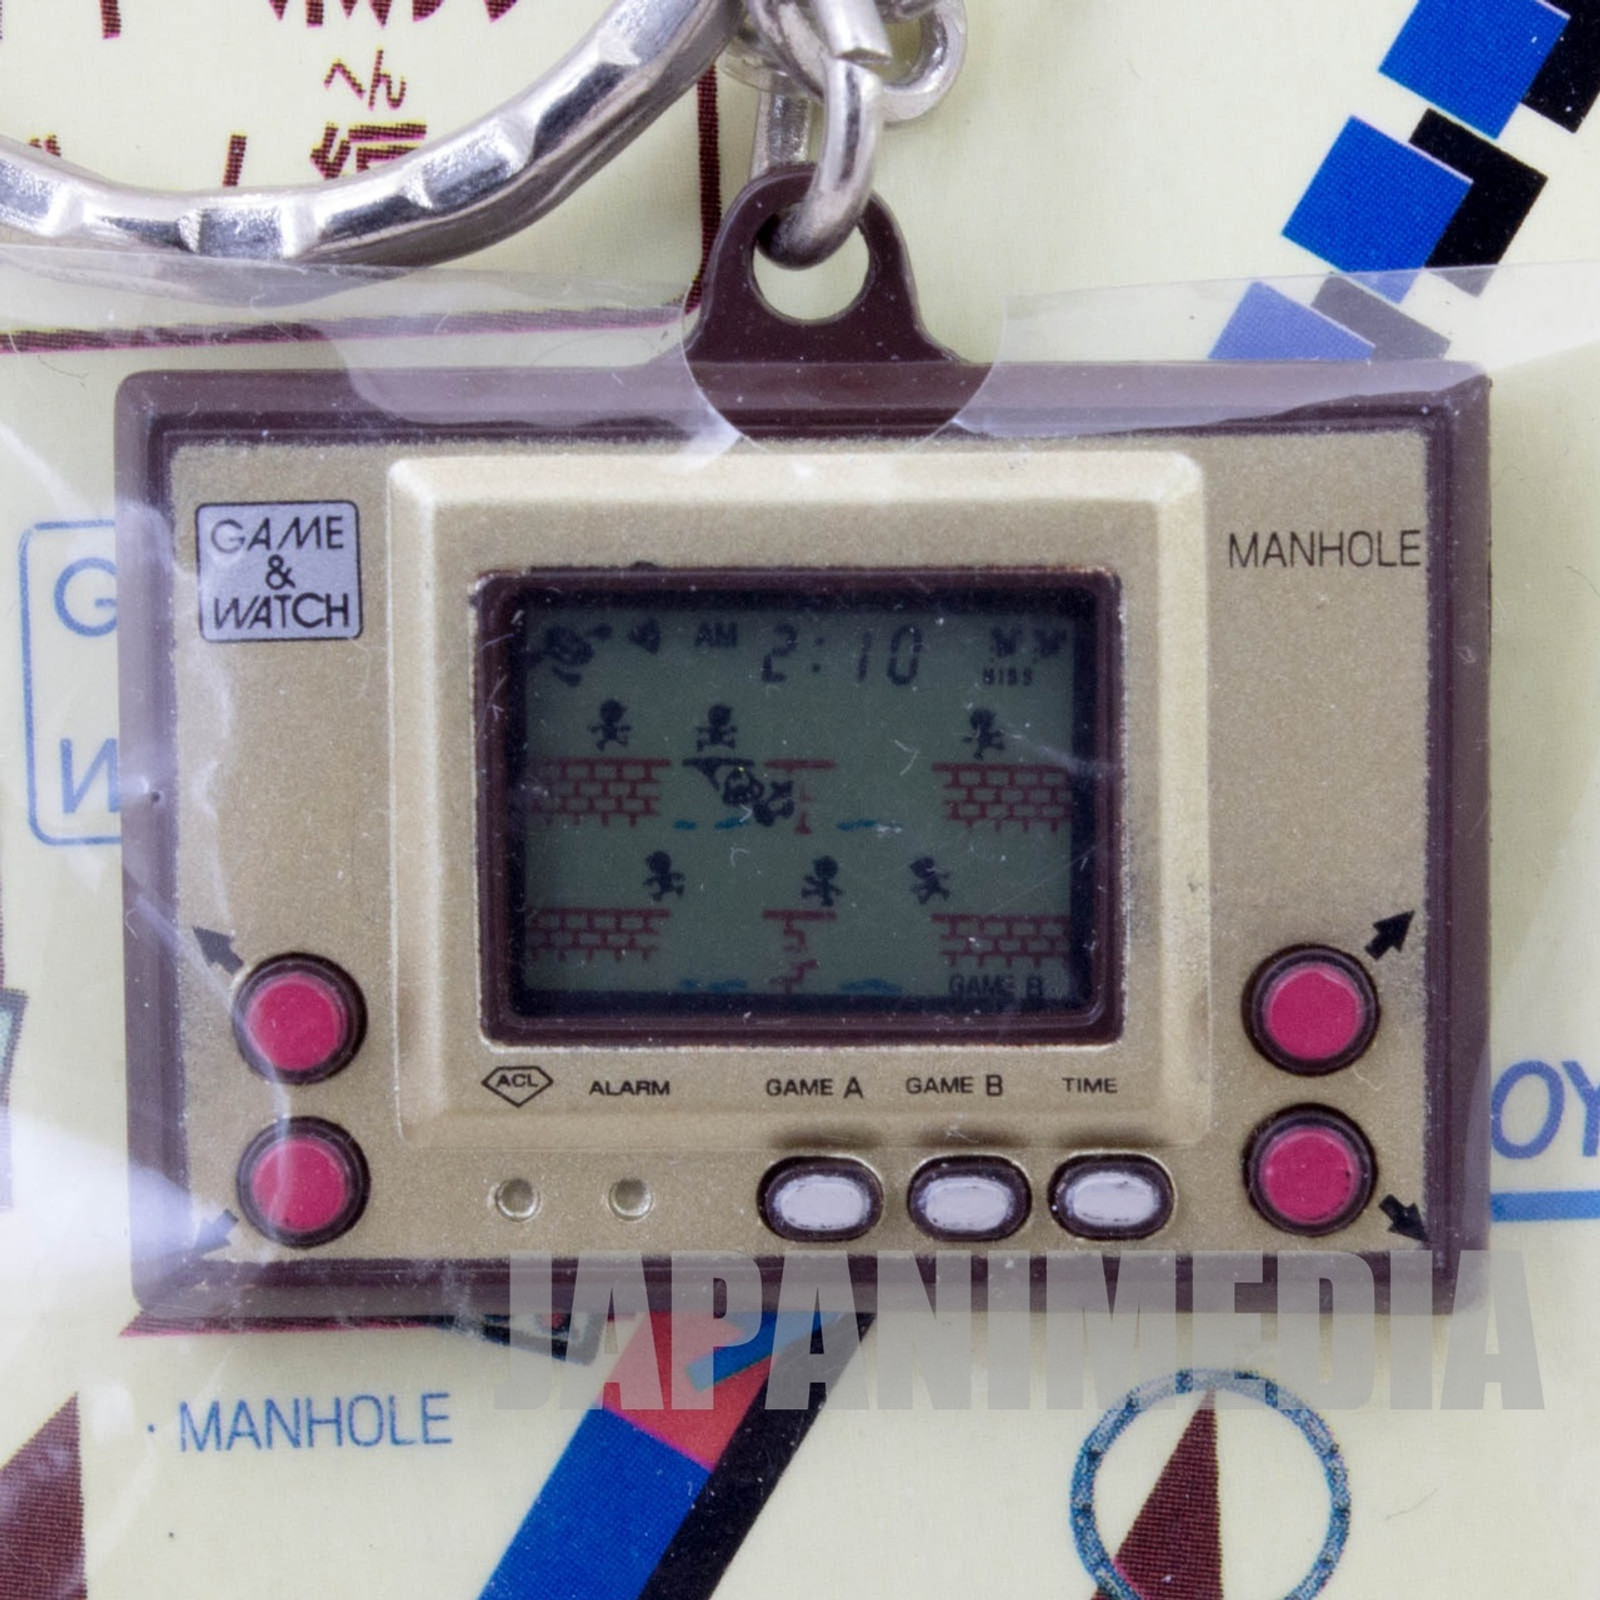 Nintendo Game & Watch History Miniature Figure Key Chain MANHOLE JAPAN